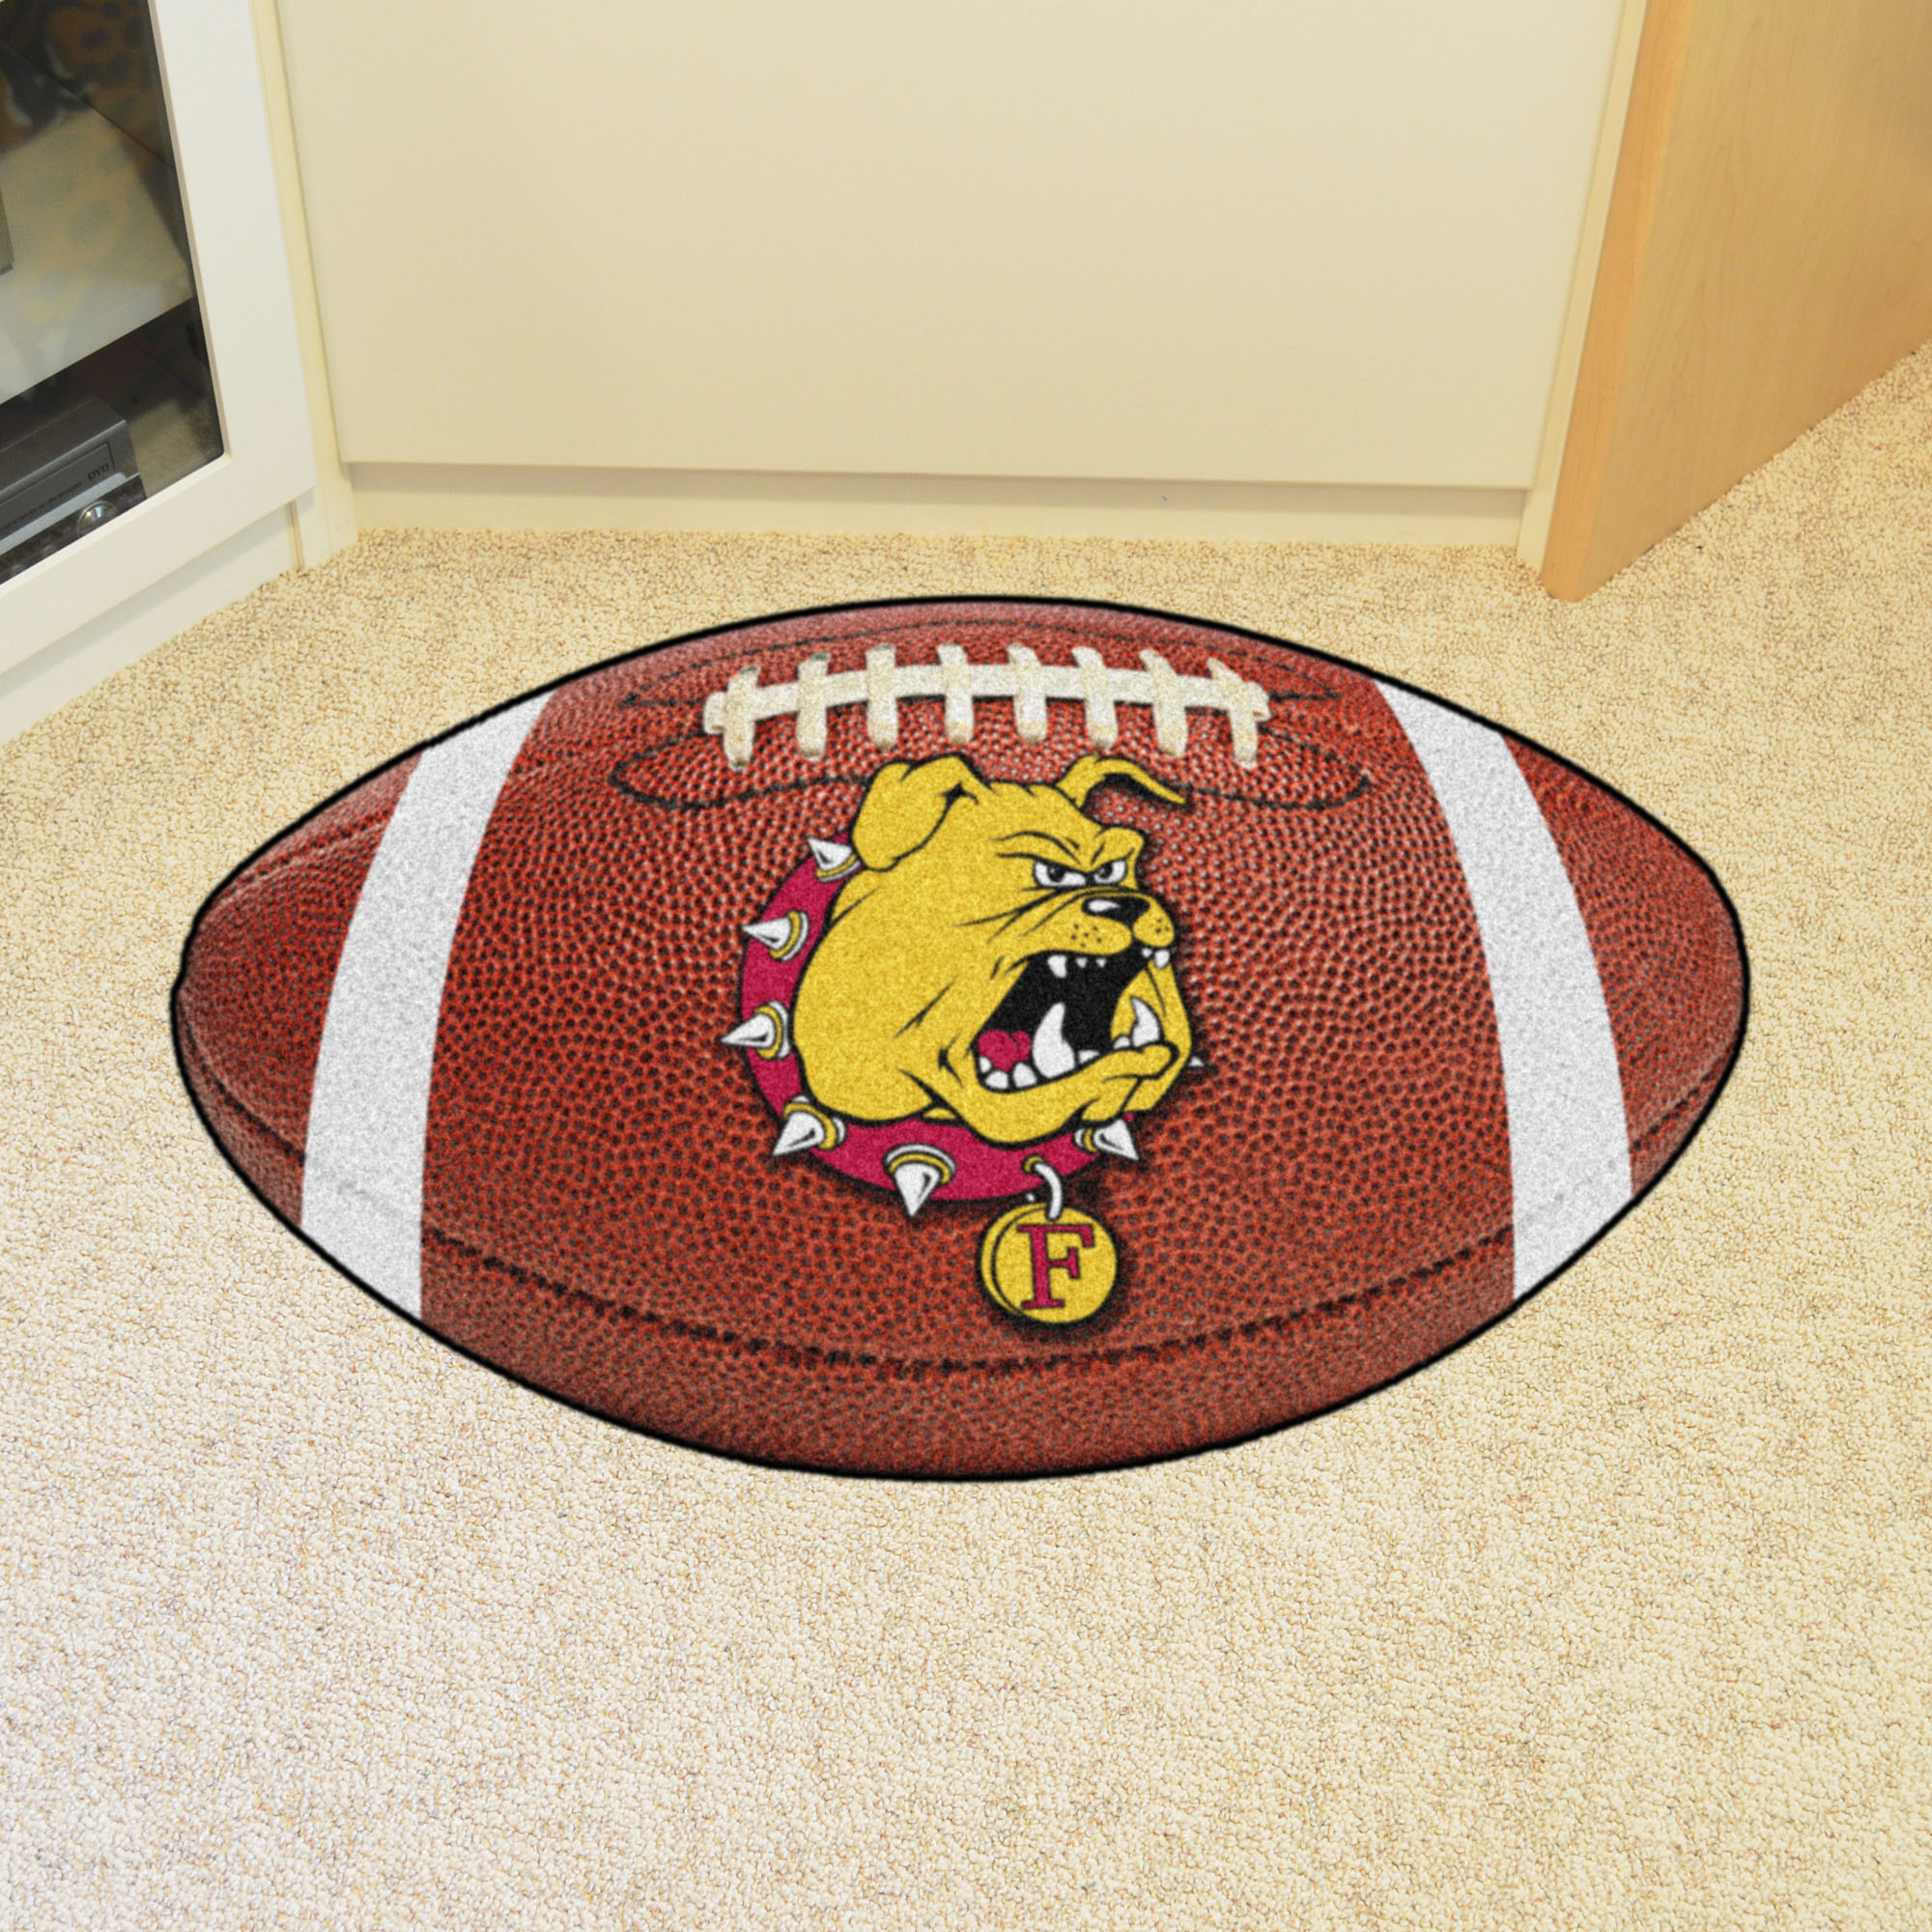 Ferris State University Ball Shaped Area Rugs (Ball Shaped Area Rugs: Football)